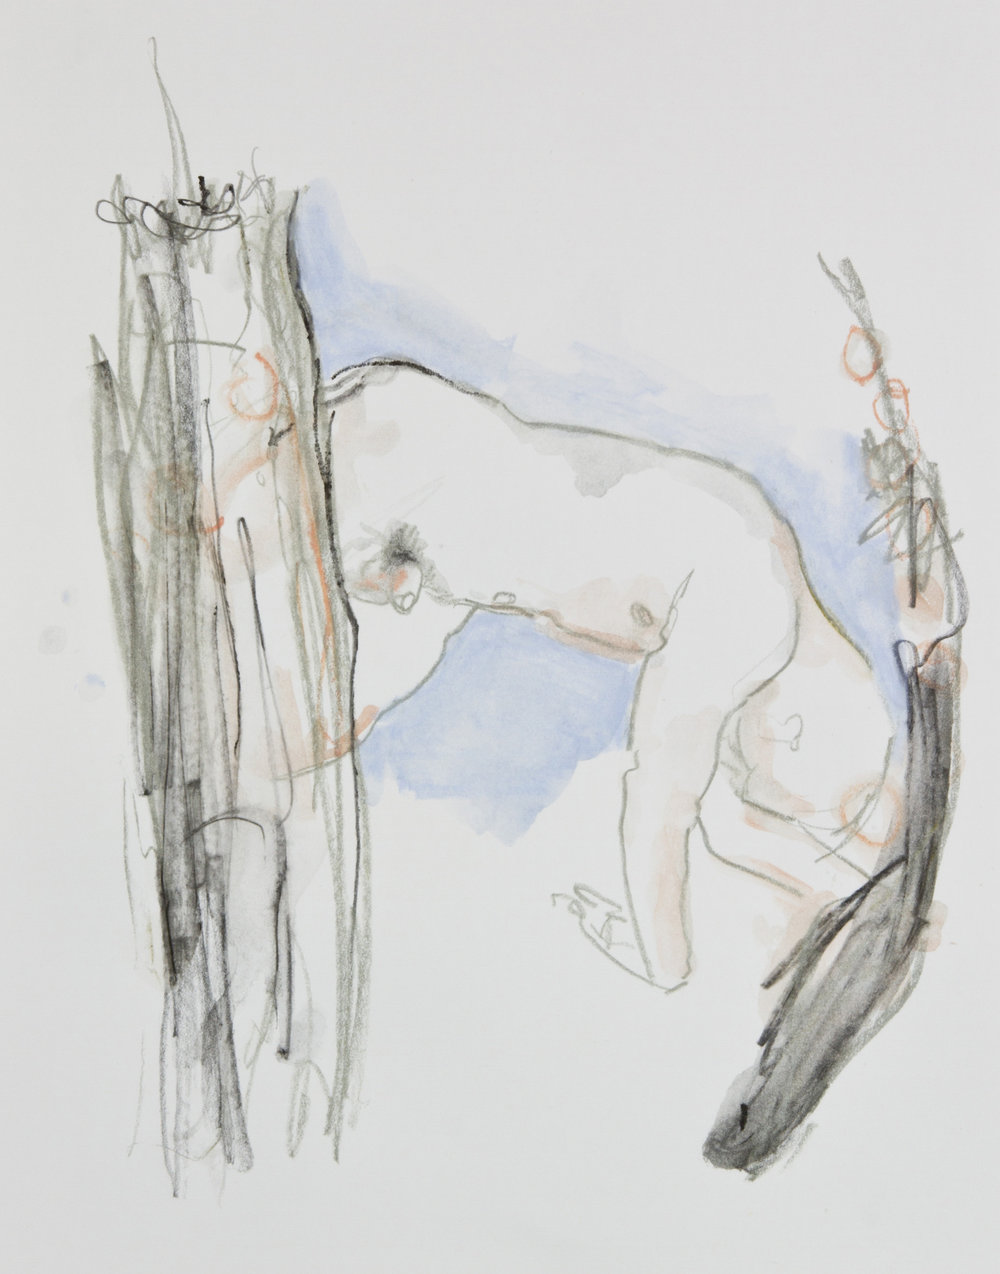 One Portal To Another, 2013, graphite, crayon and watercolor pencil on paper, 11x14 inches